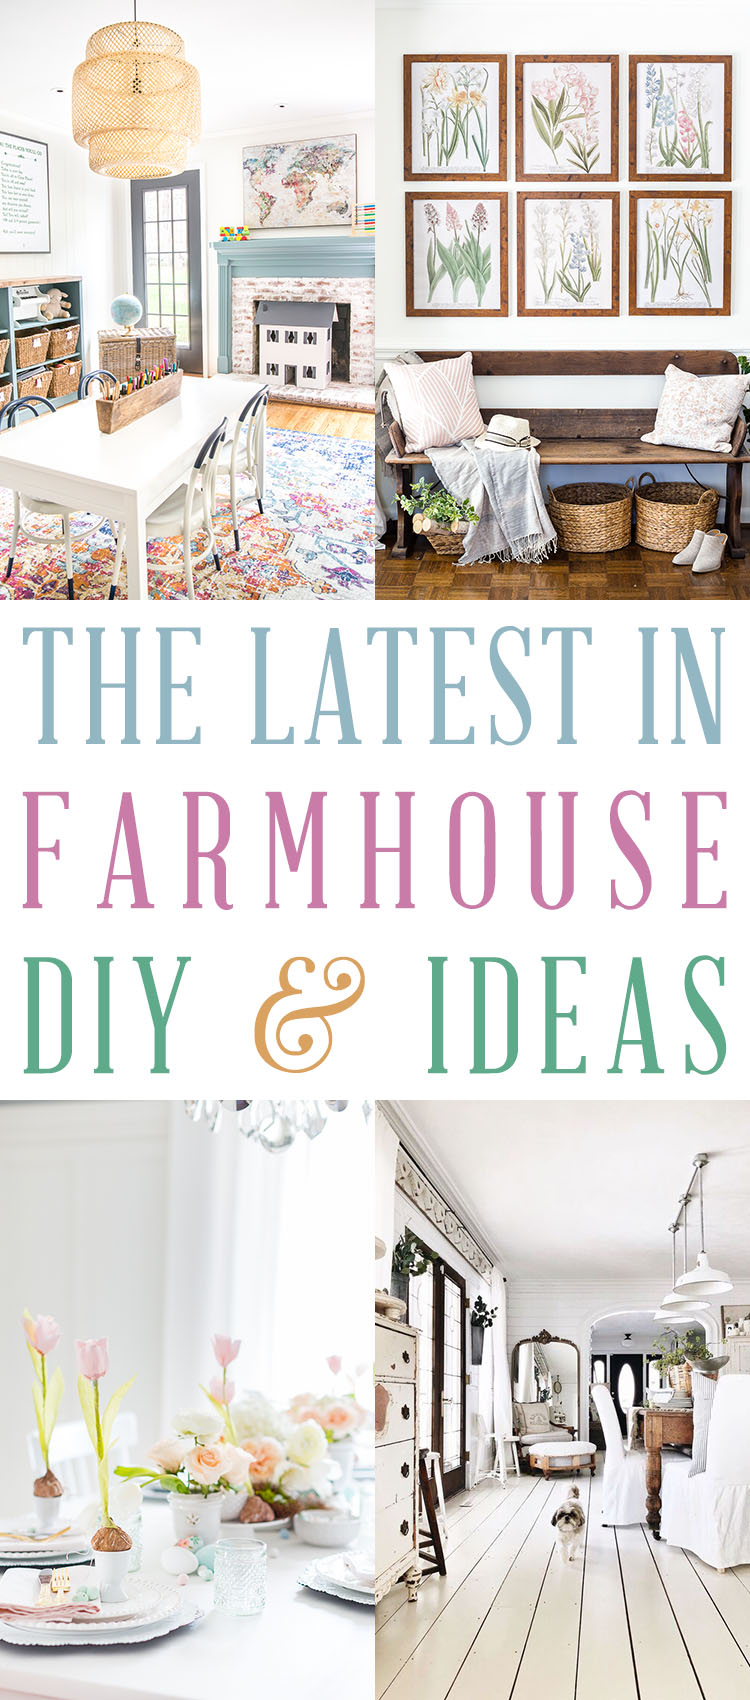 The Latest in Farmhouse DIY & Ideas!